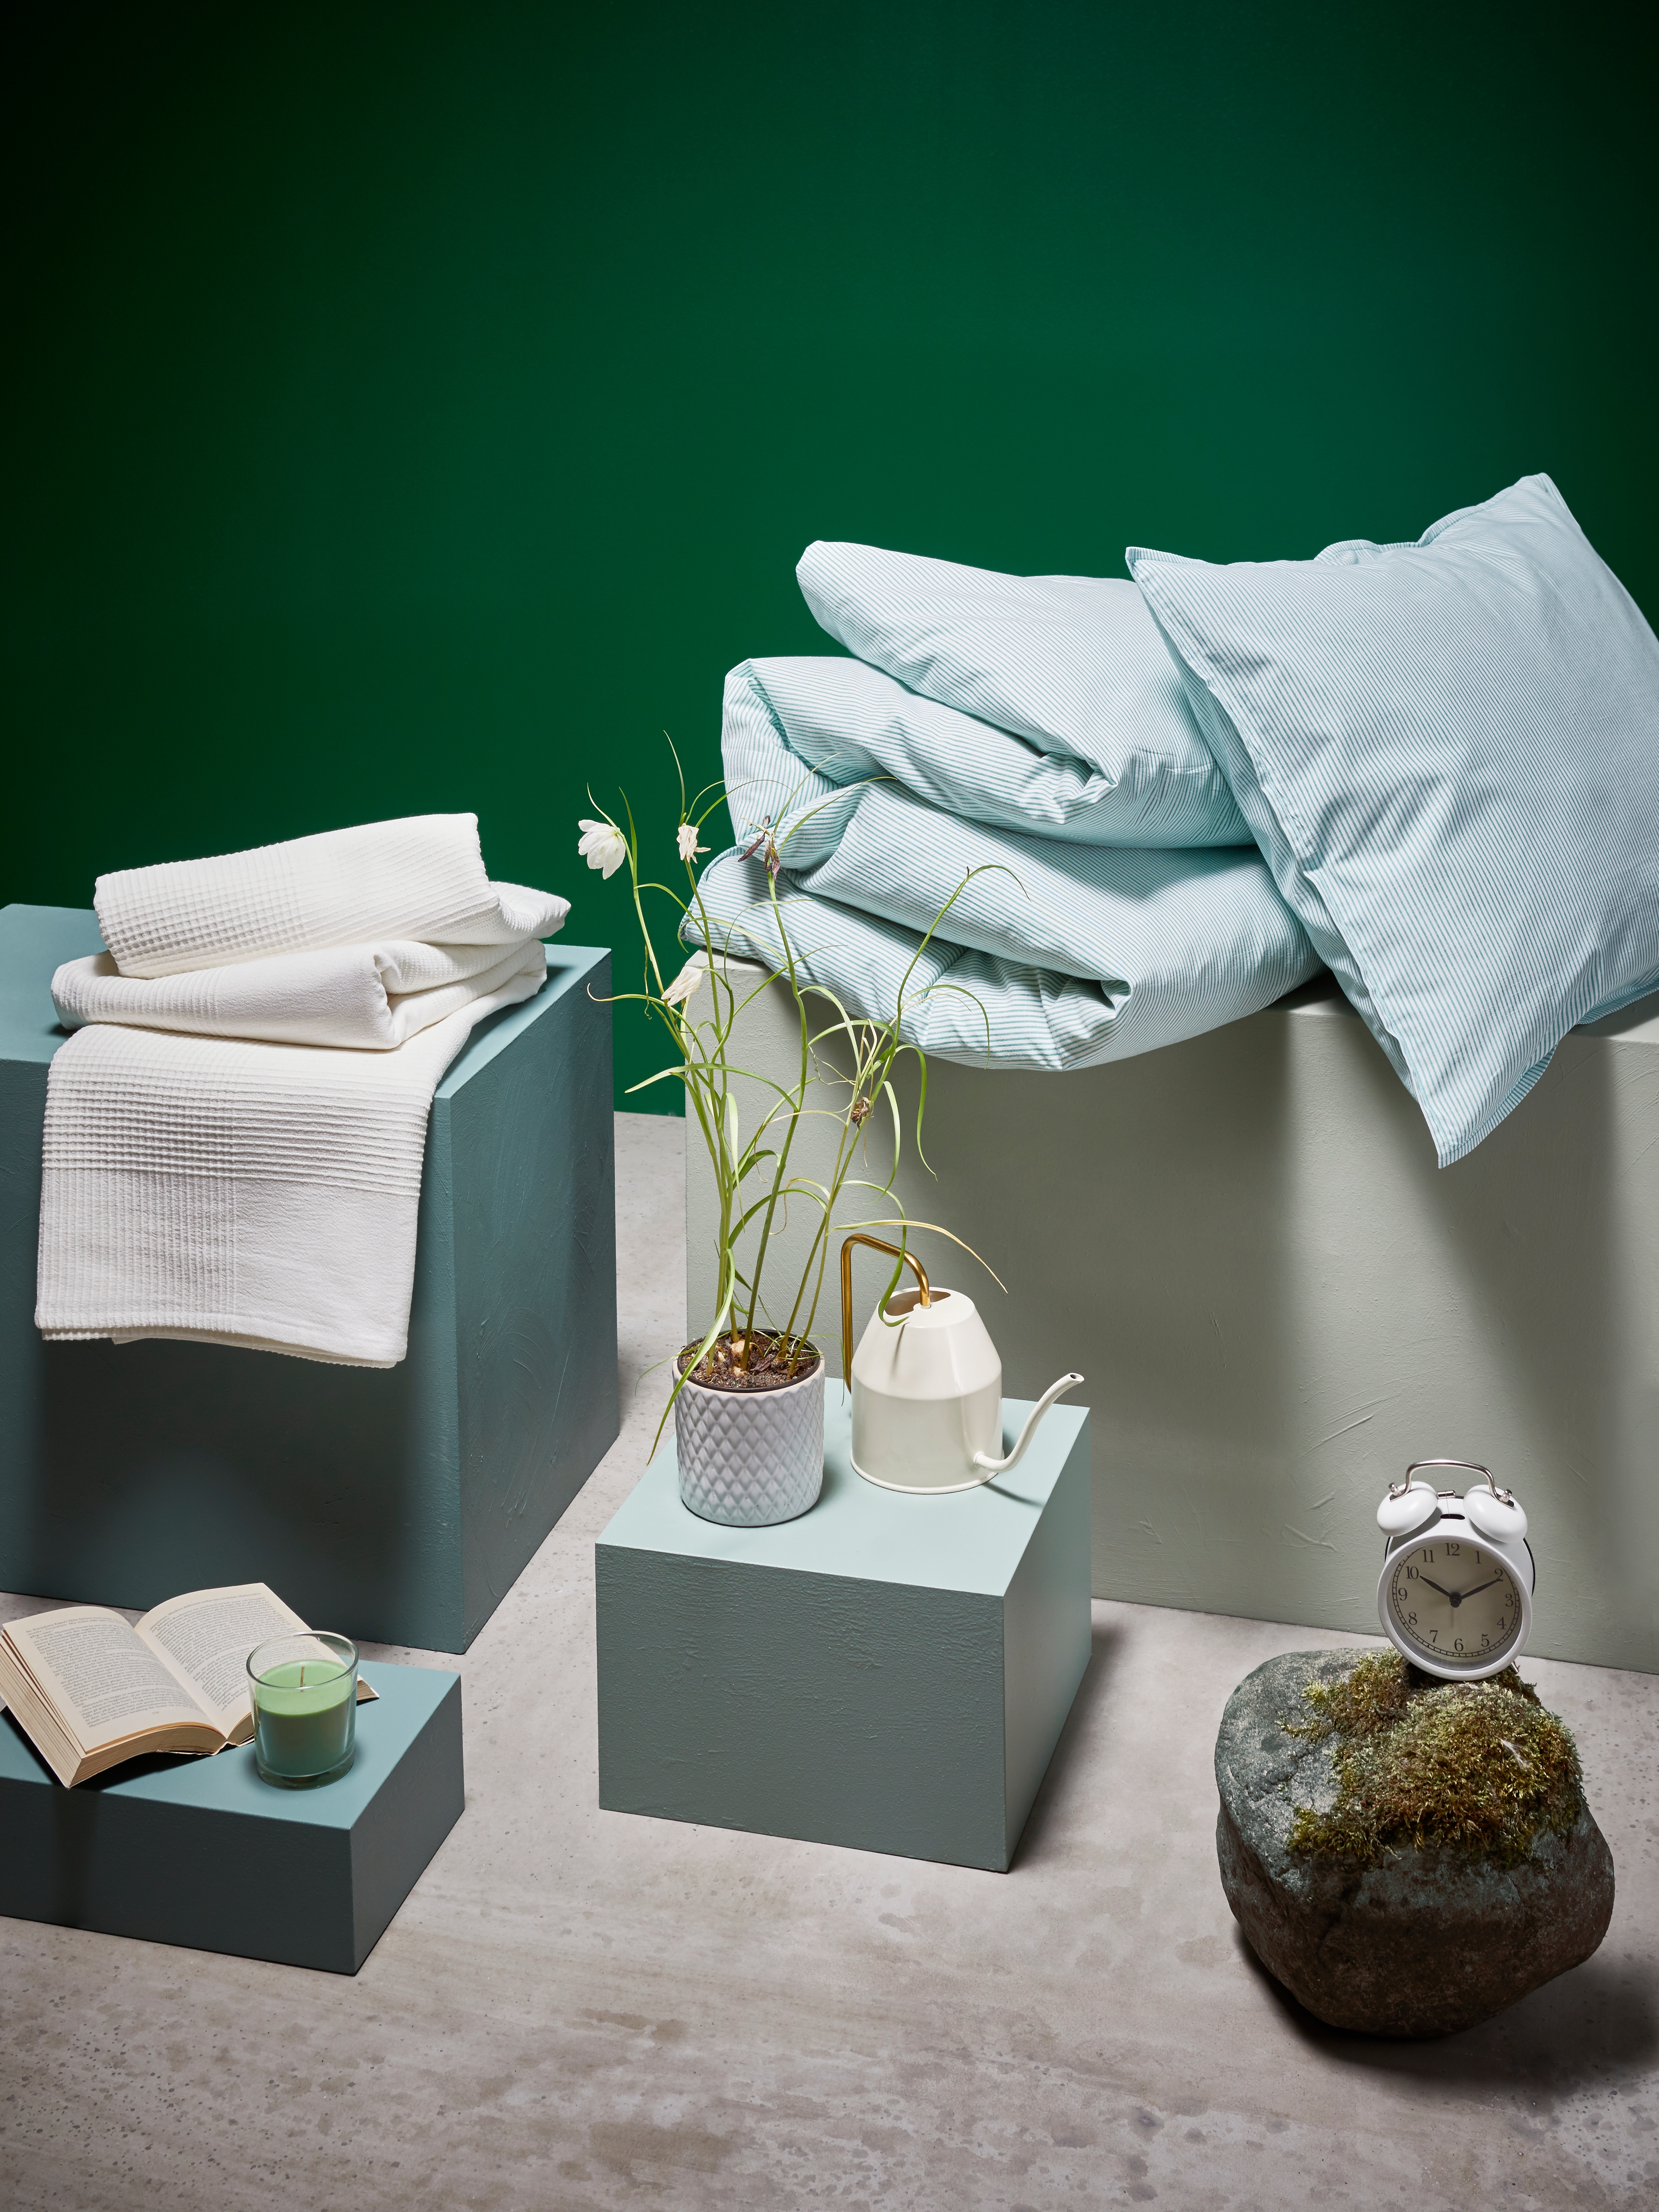 A BERGPALM bed linen set, INDIRA throw, SINNLIG scented candle and VATTENKRASSE watering can, a plant and a clock on podiums.